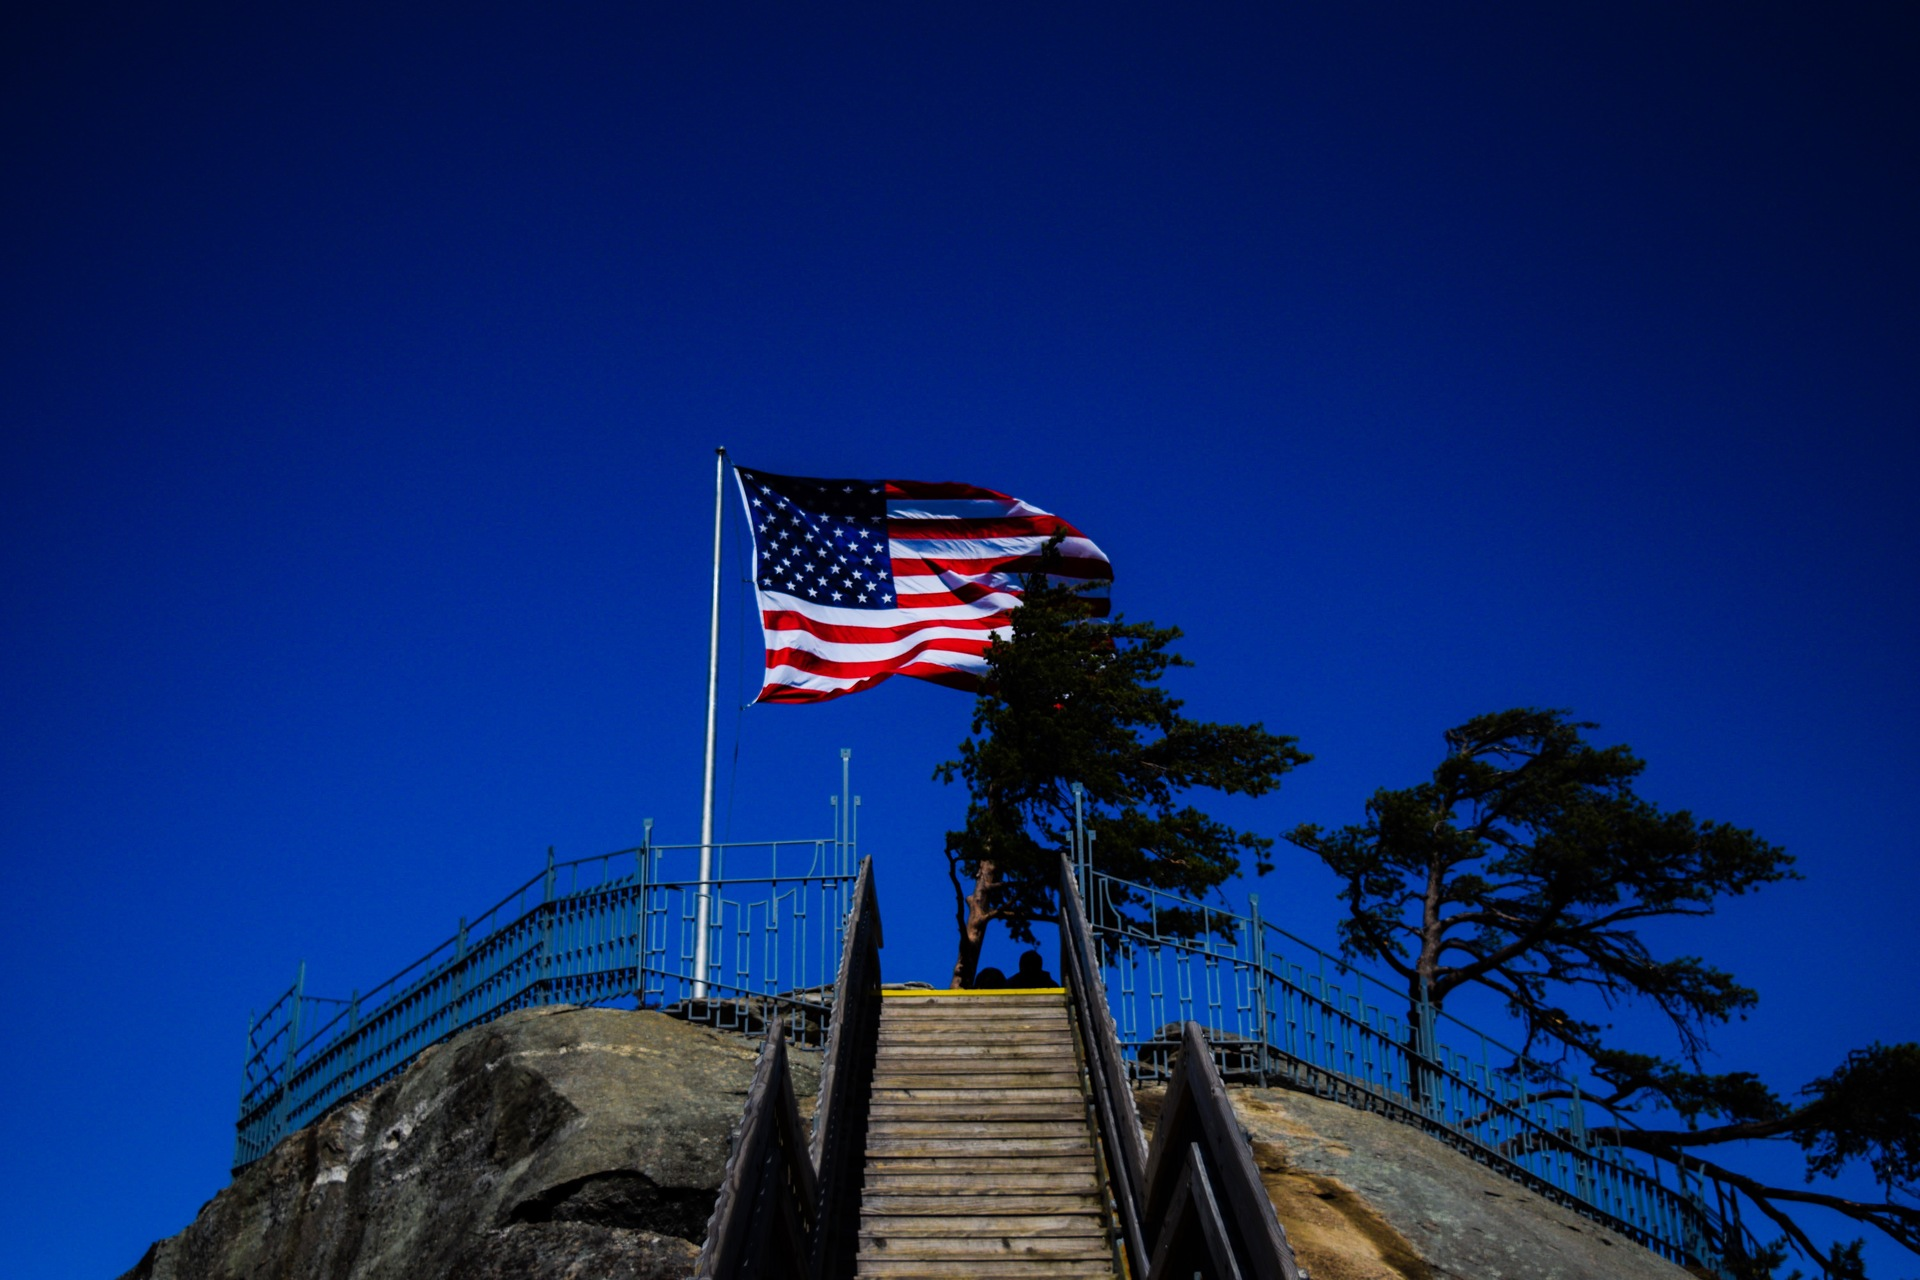 American flag | travel, sun, sky, outdoors